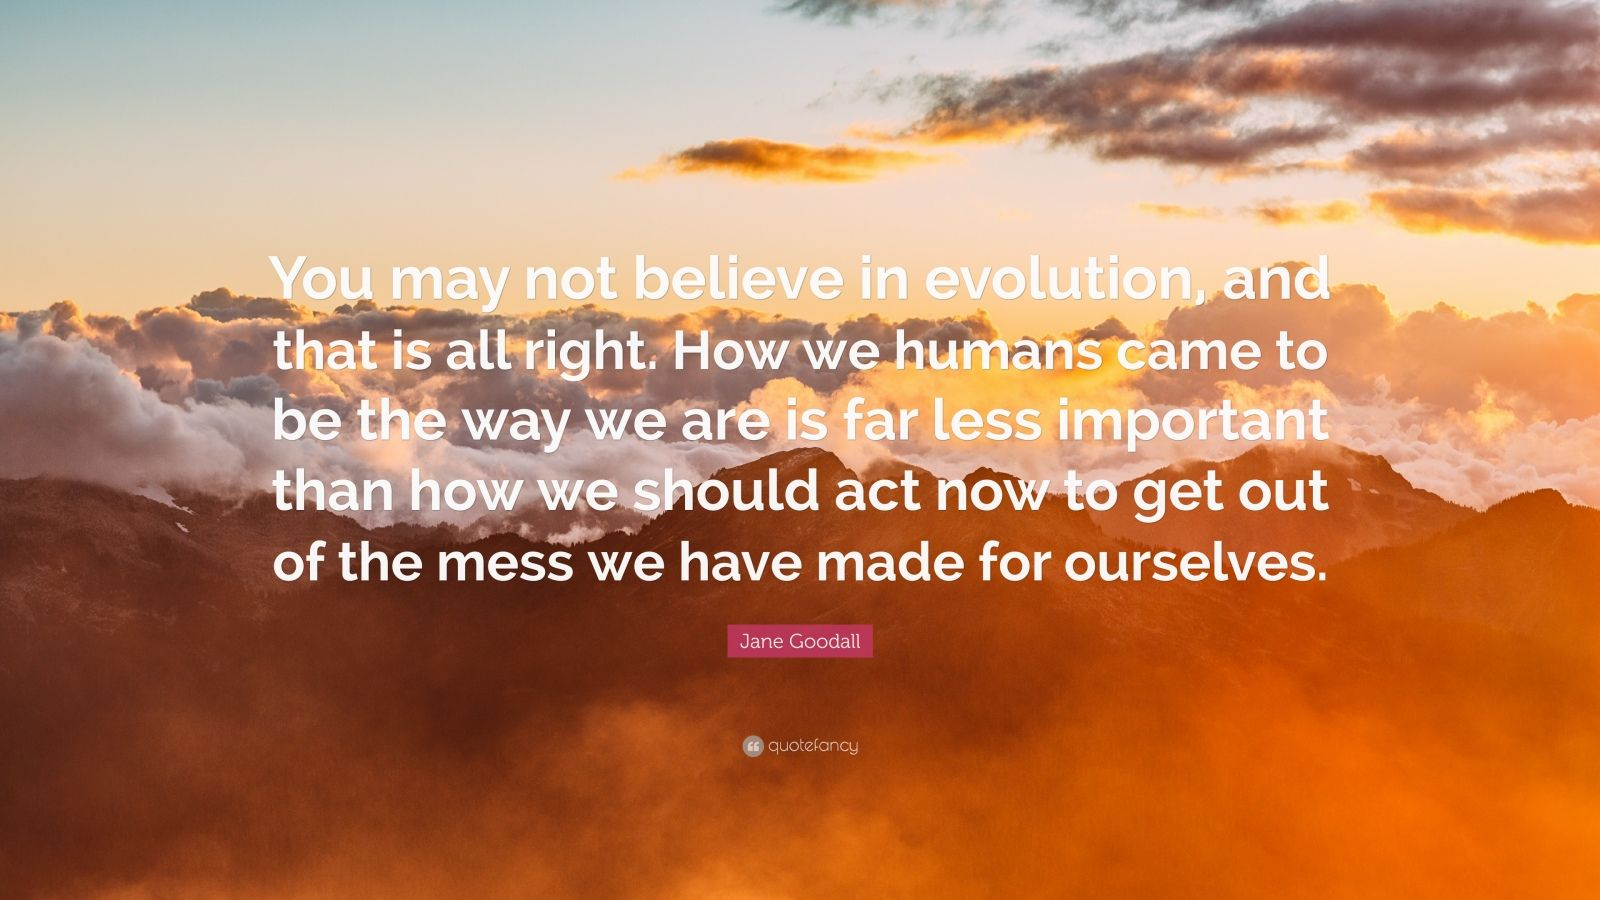 "Jane Goodall Quote: ""You may not believe in evolution, and that is all right. How we humans came to be the way we are is far less important than how we should act now to get out of the mess we have made for ourselves."""